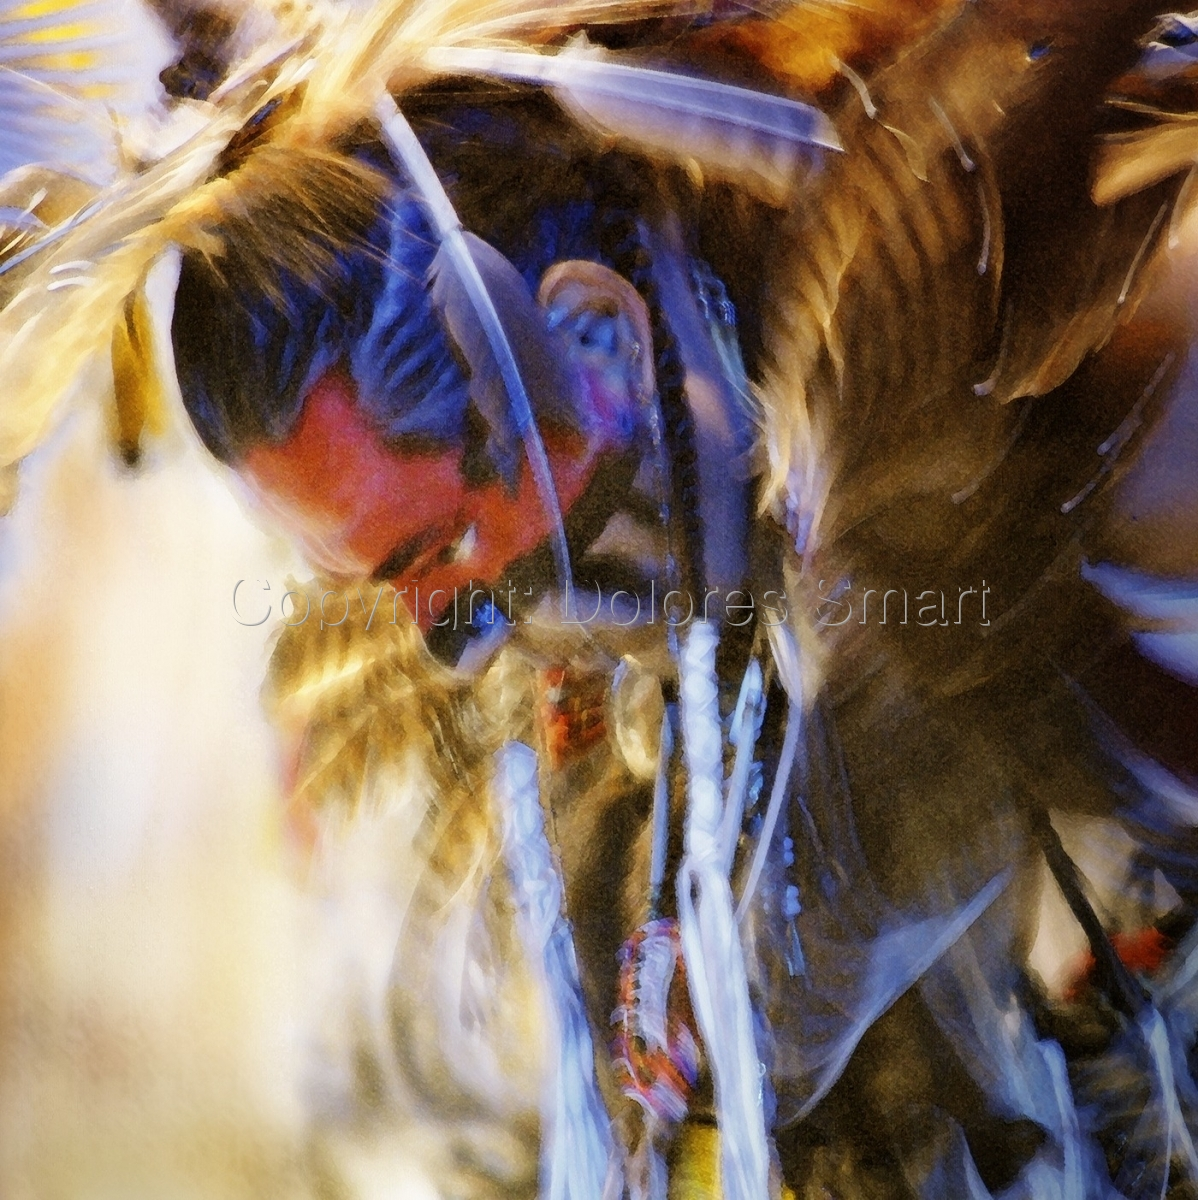 Dancer 2, Pow Wow (large view)